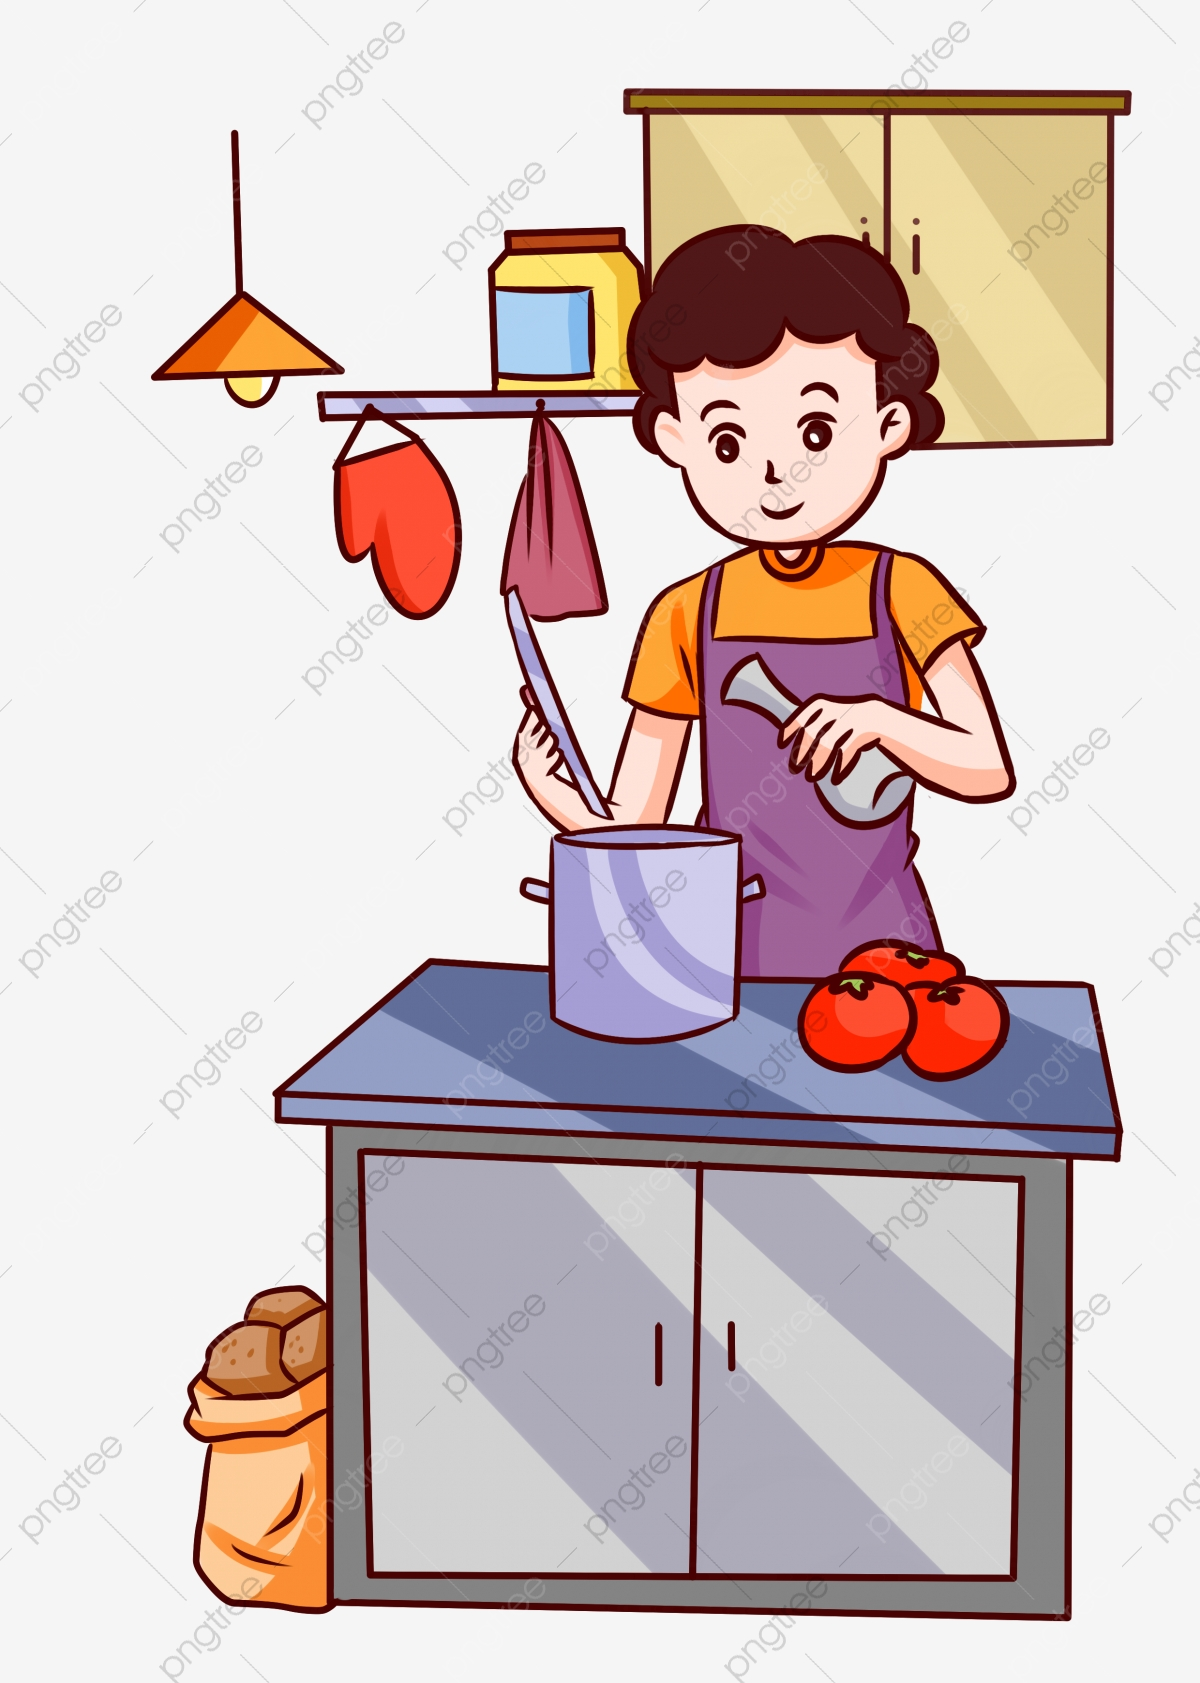 Food Cooking Housewife Soup Add Seasoning Illustration Food Png Transparent Clipart Image And Psd File For Free Download